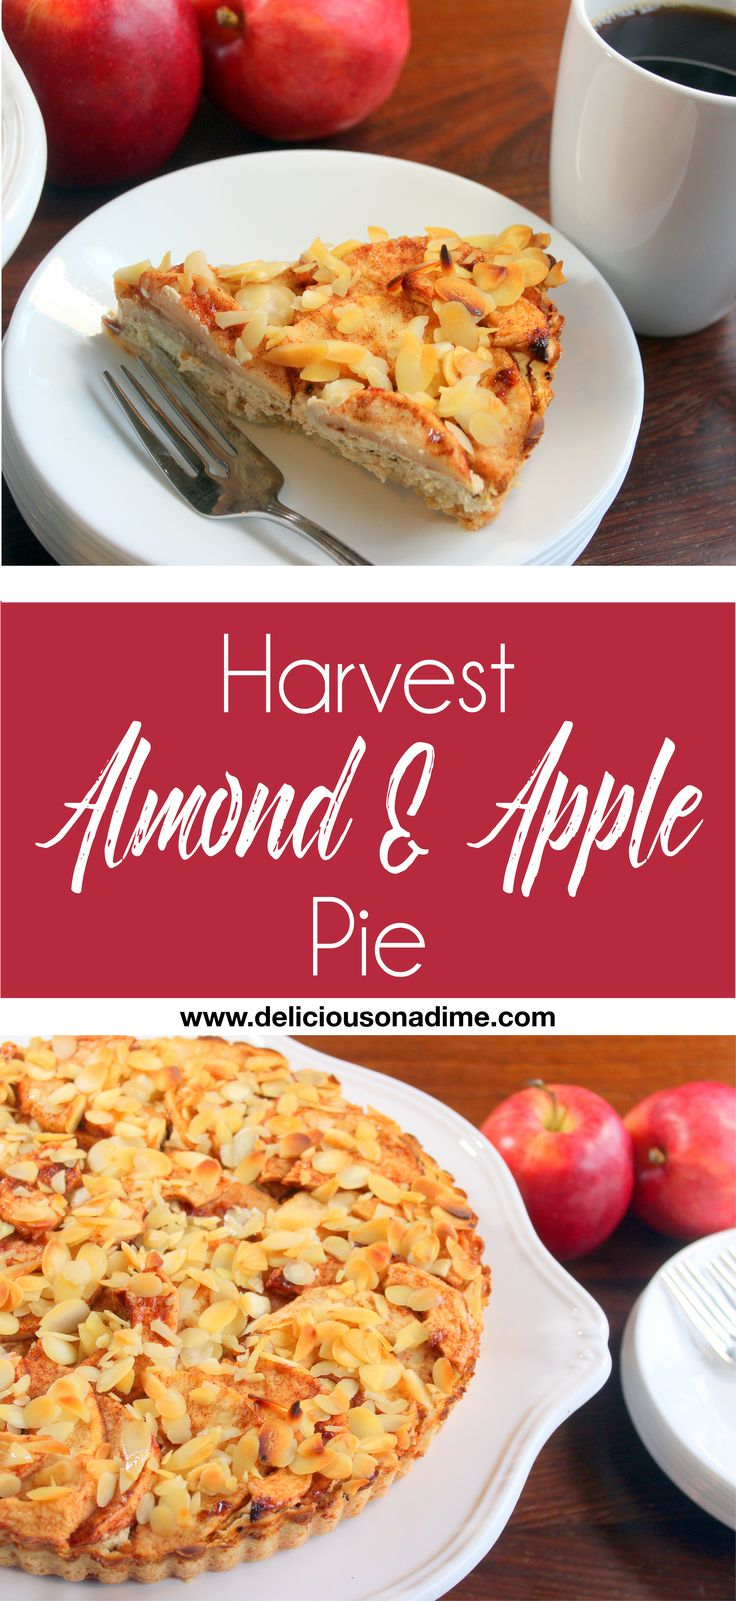 Apple & Almond Pie - Such an amazing fall dessert!  Creamy, rich and incredibly addictive!  Everyone will want your recipe.  PERFECT for Thanksgiving!  #Thanksgivingdesserts #falldesserts #Thanksgivingrecipes #bestappledessert